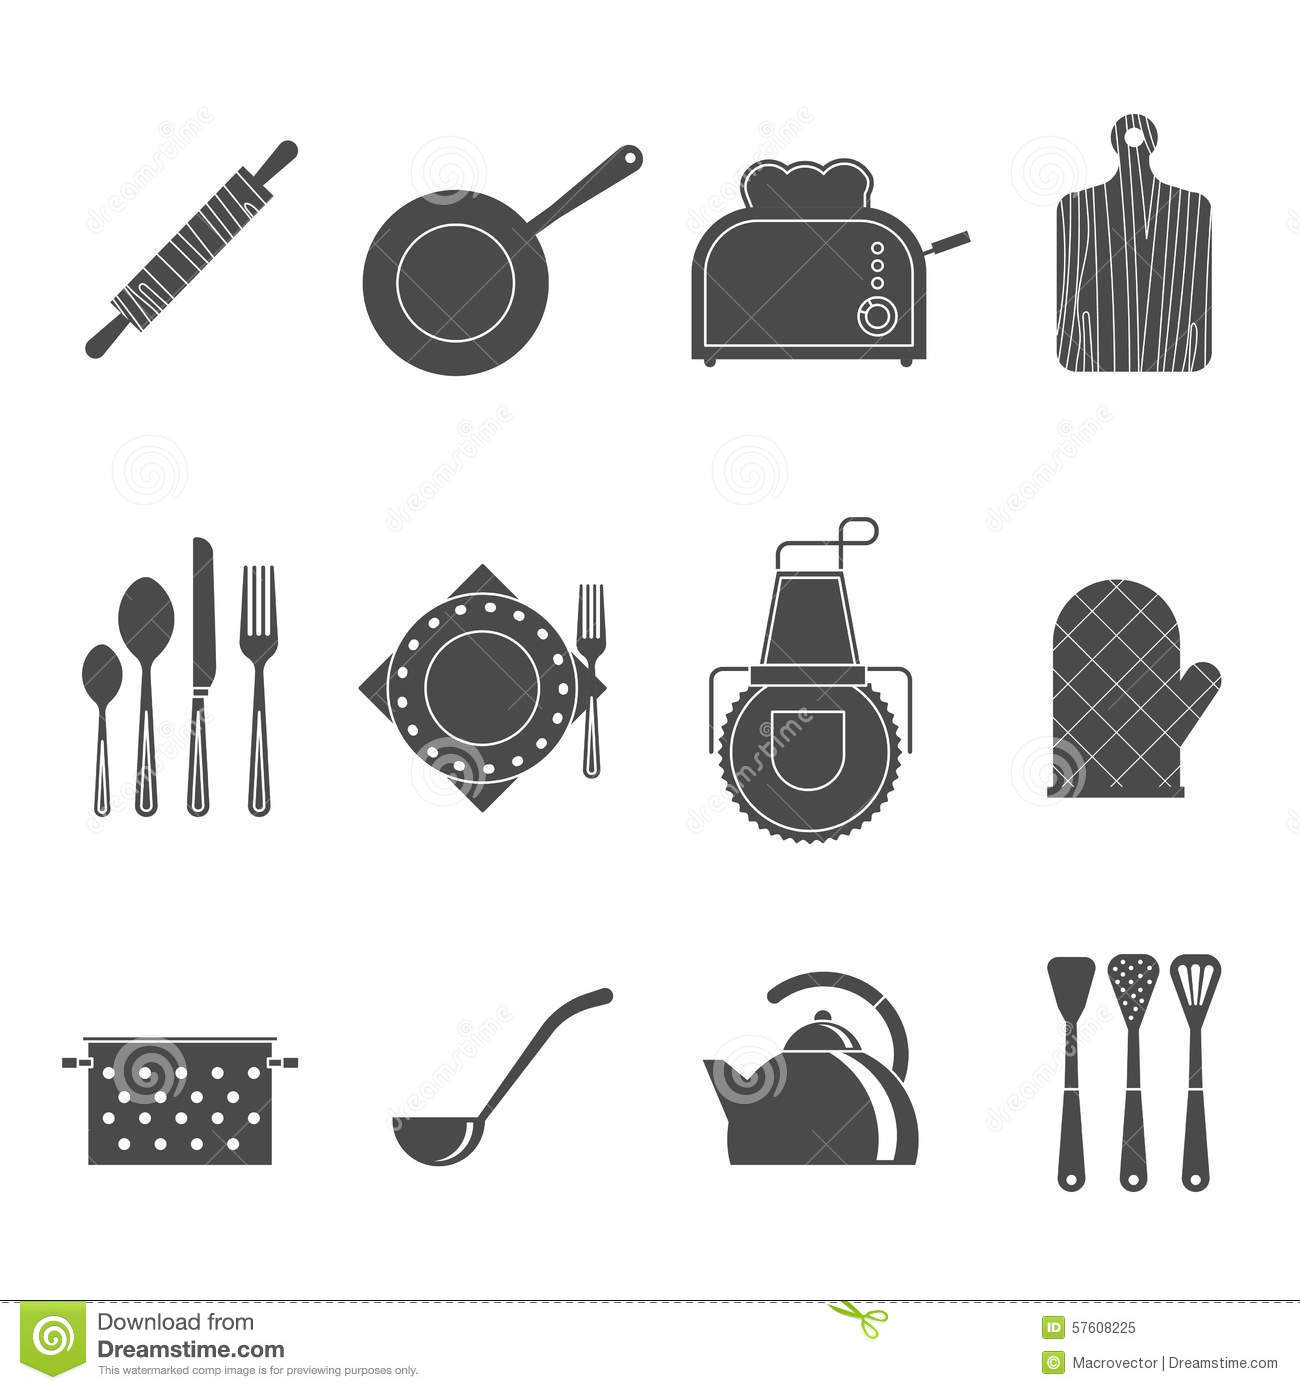 Set Of Black Kitchen Icons Utensils Stock Vector: Kitchen Tools Accessories Black Icons Set Stock Vector